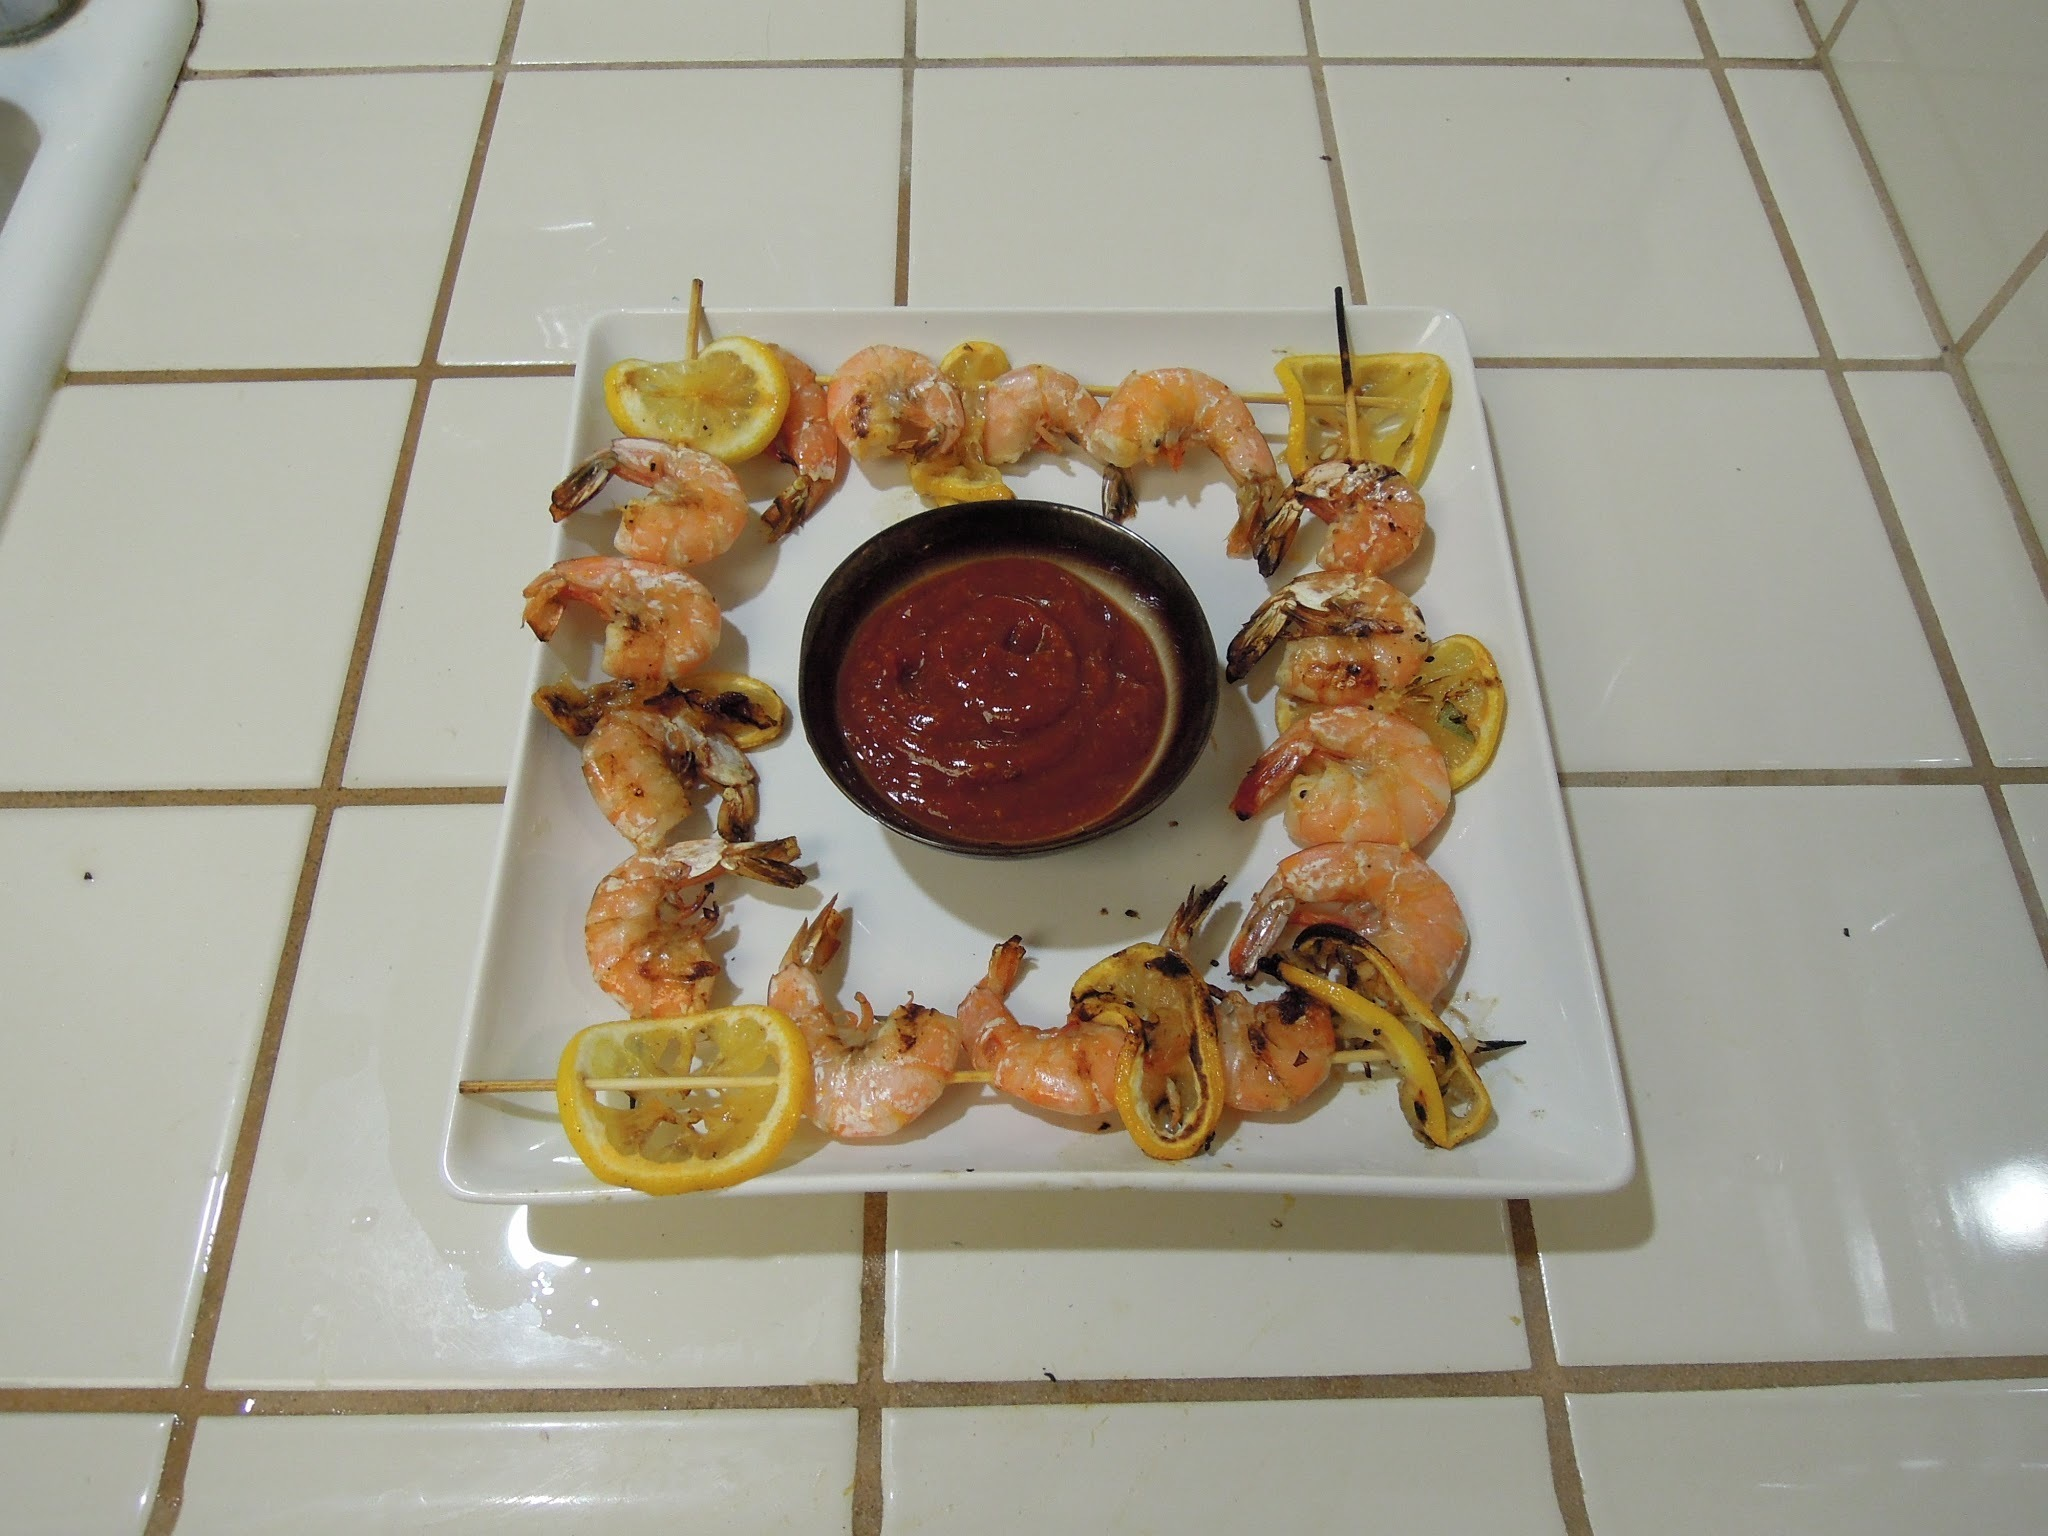 Grilled Shrimp Cocktail with Cajun Spices (Bbq dishes, part one of three)